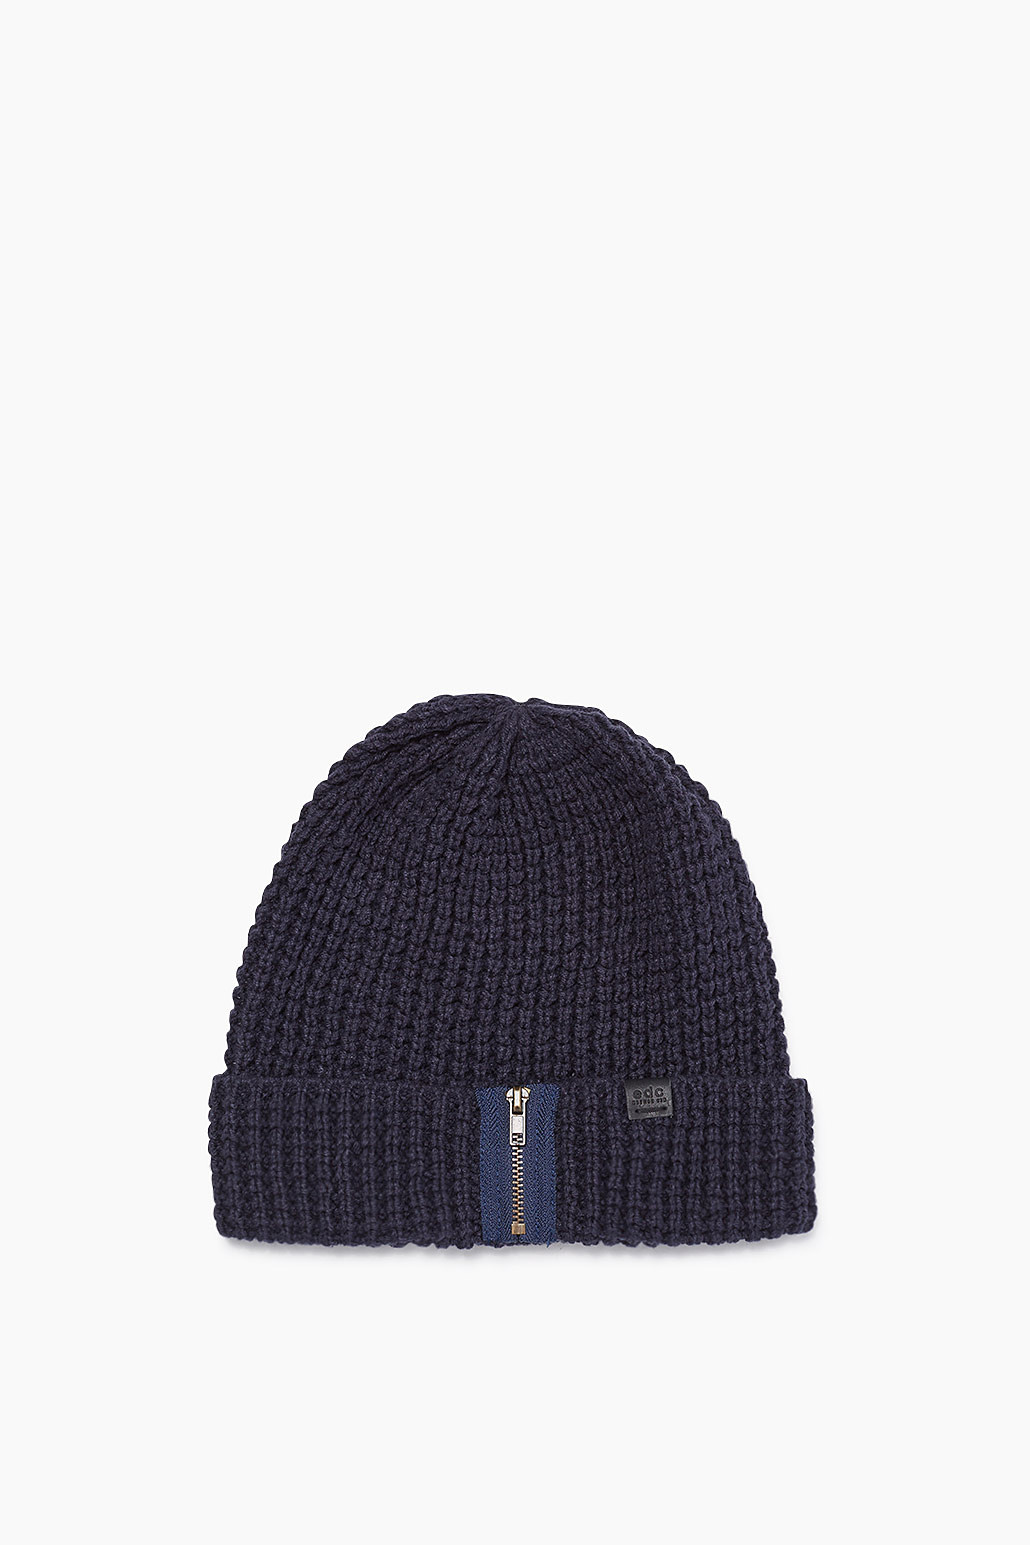 Unique Edc Rib Knit Hat with A Zip Detail at Our Line Shop Ribbed Hat Of Amazing 42 Pictures Ribbed Hat